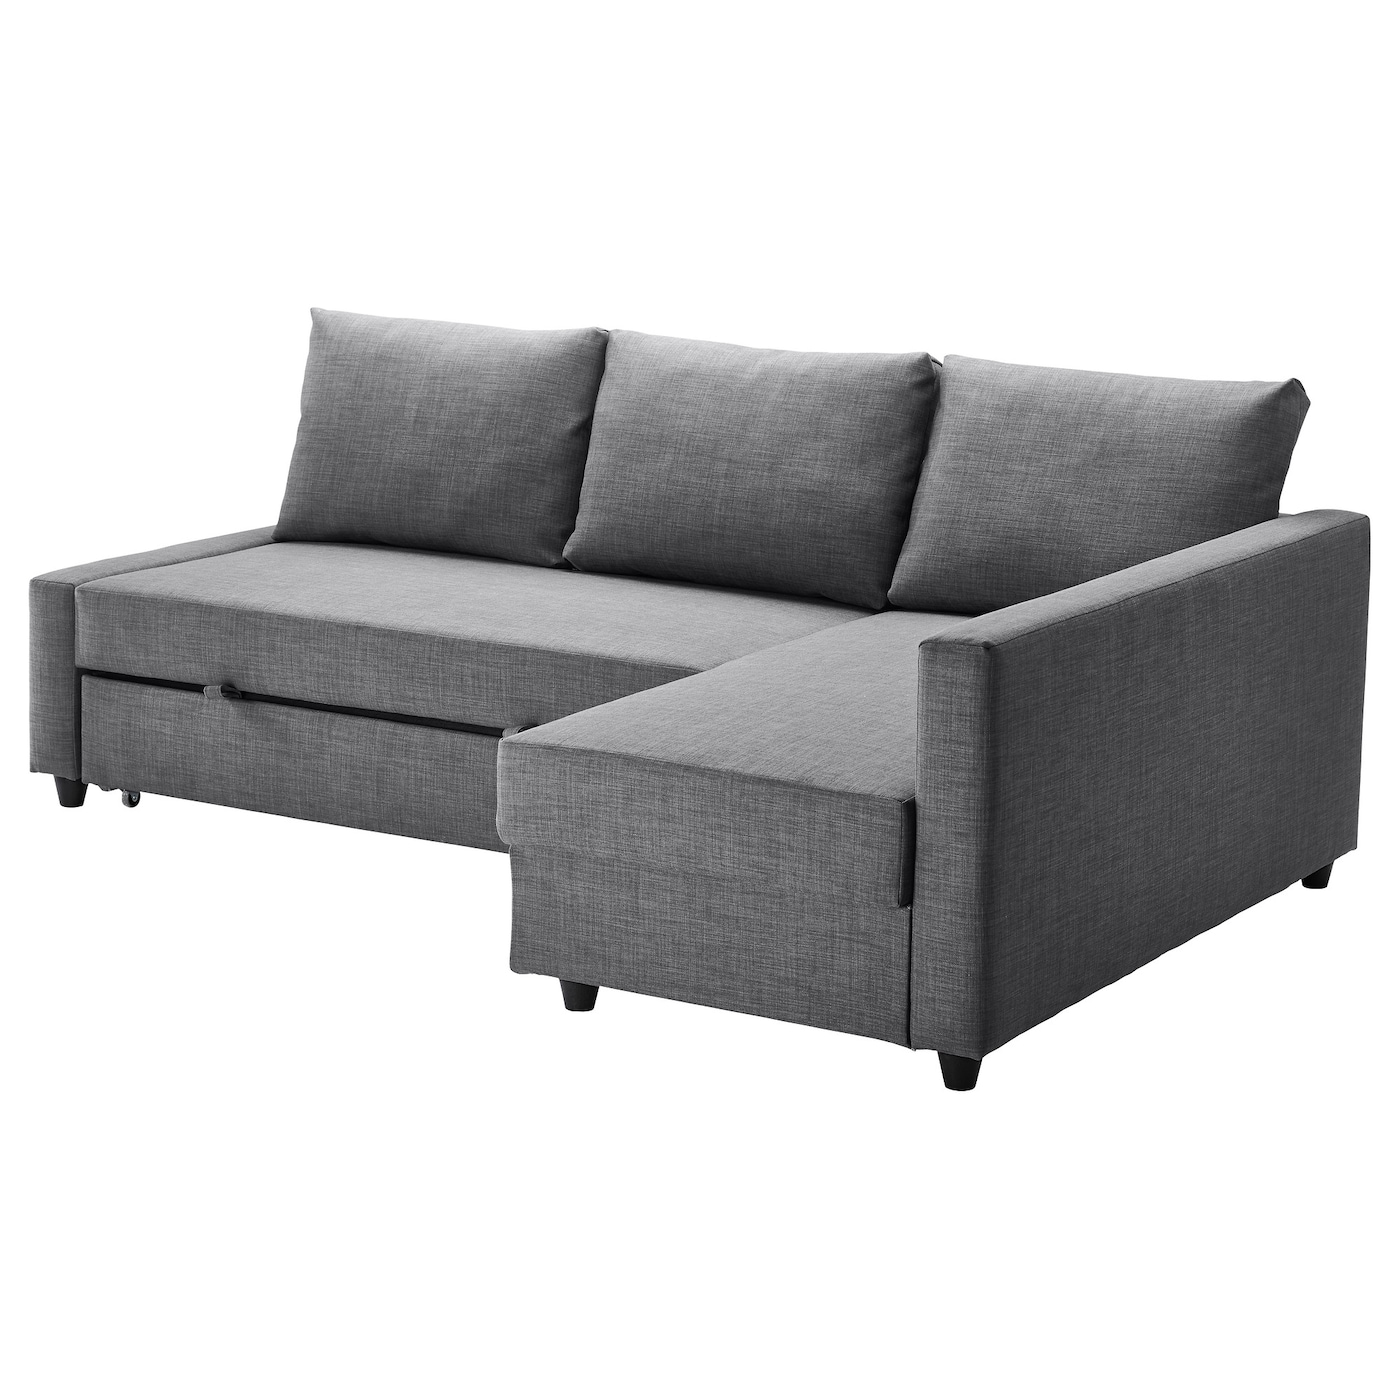 Picture of: Friheten Skiftebo Dark Grey Corner Sofa Bed With Storage Ikea